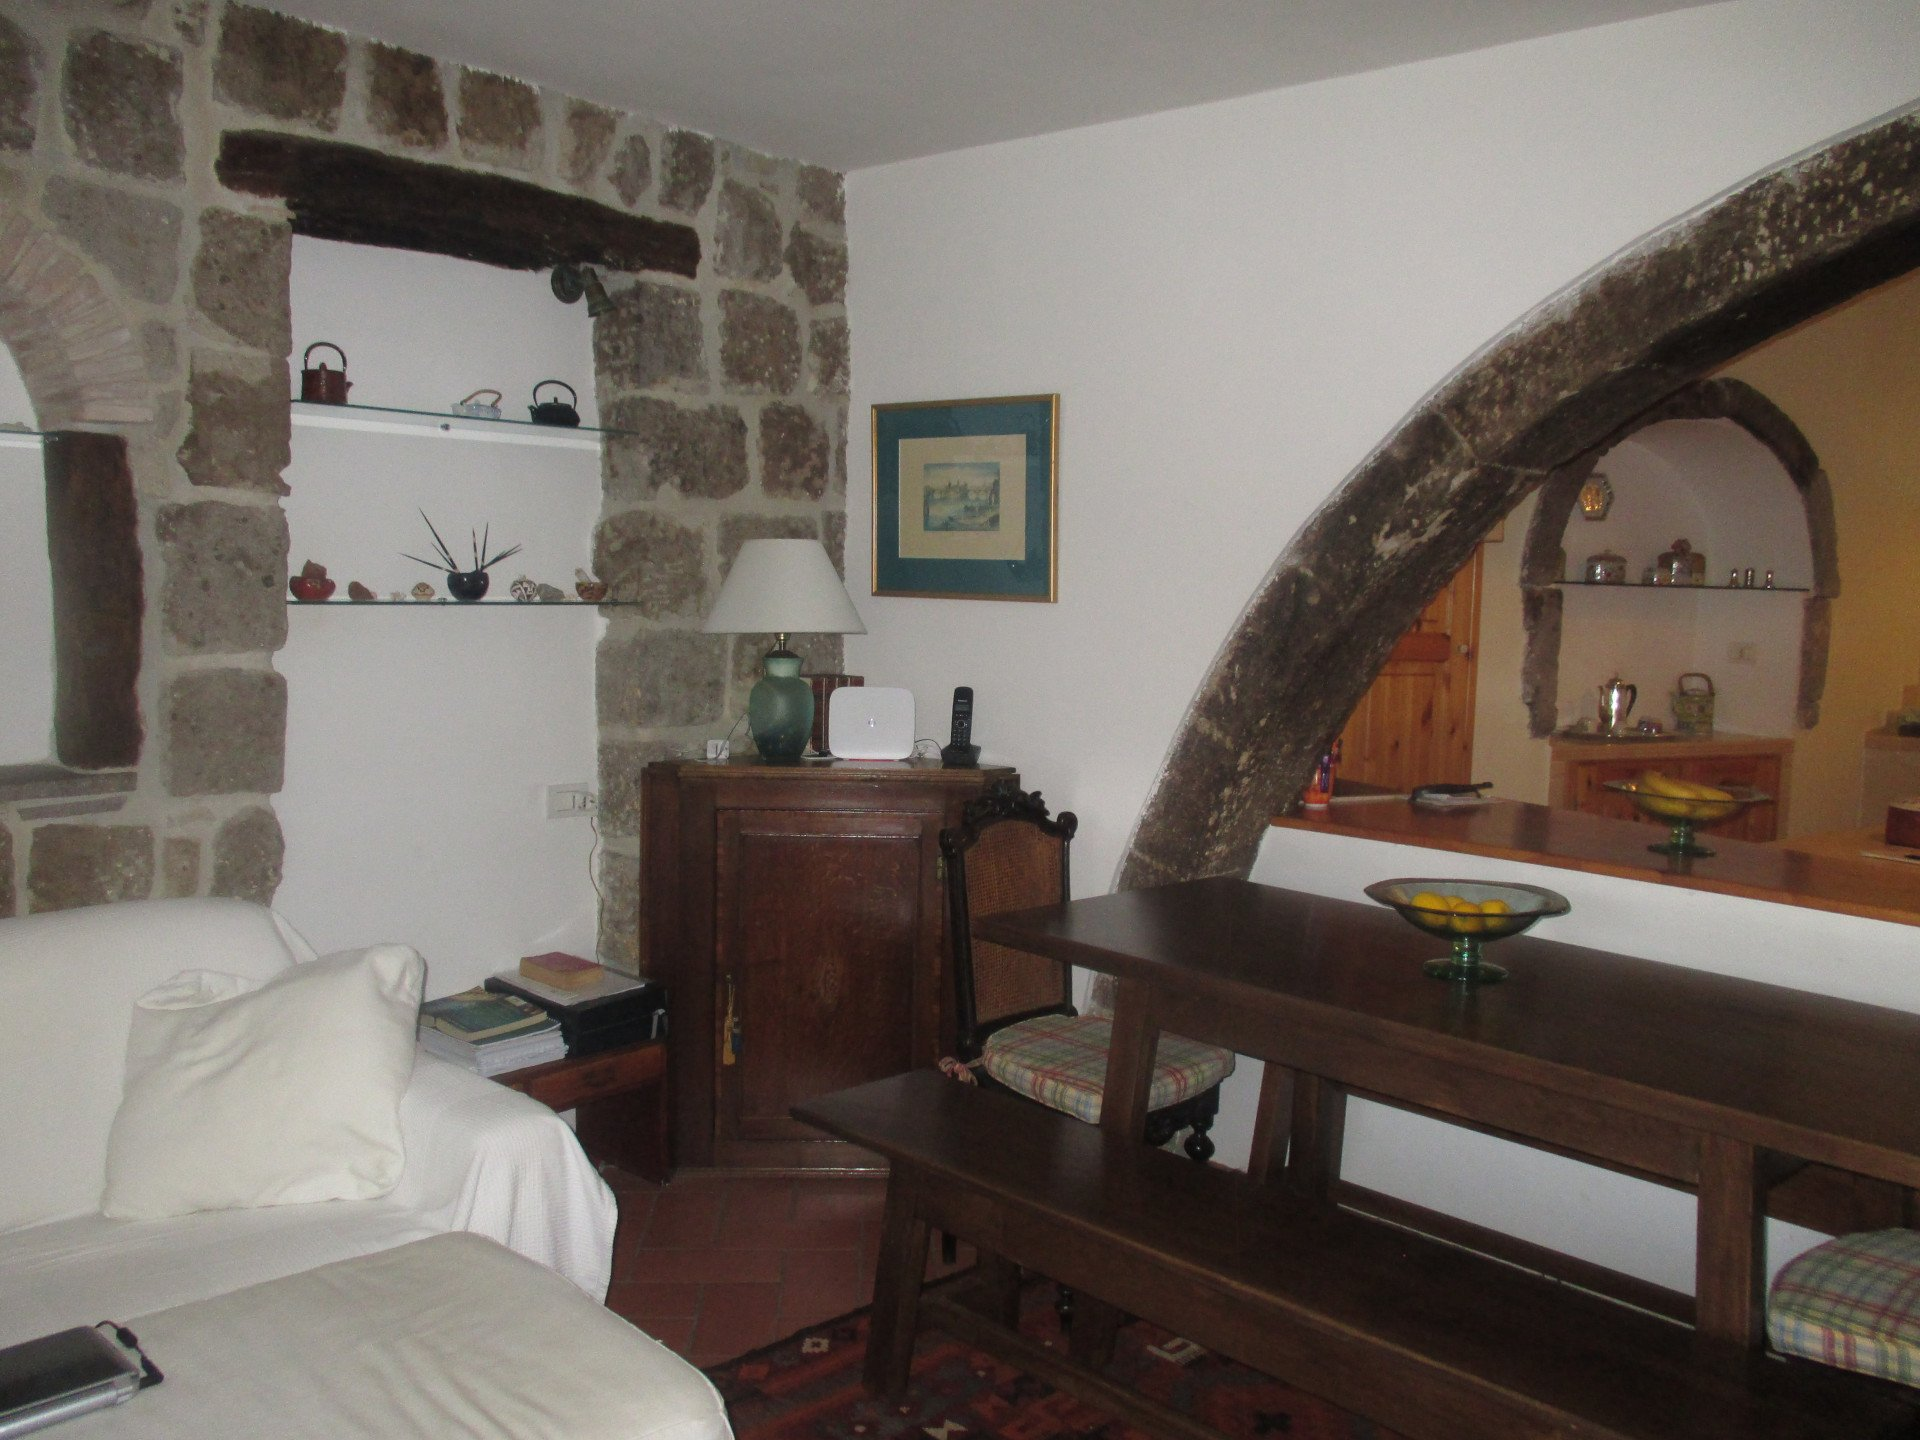 RECENTLY RENOVATED DELIGHTFUL PROPERTY IN CENTER OF MEDIEVAL HAMLET